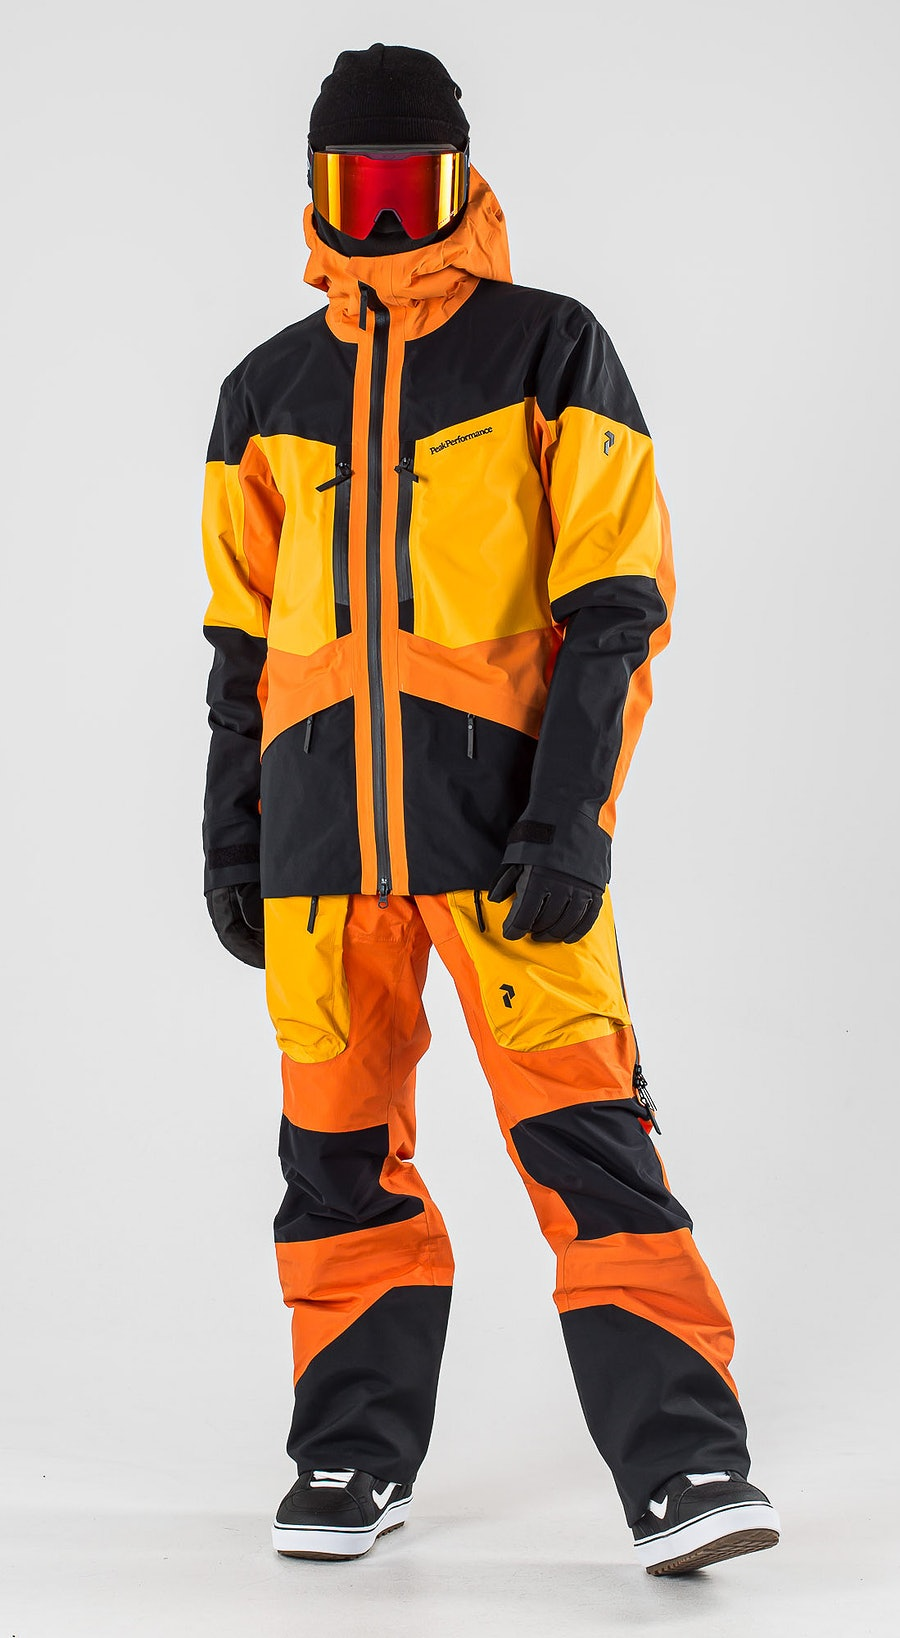 Peak Performance Gravity Orange Altitude Vêtements de Snowboard  Multi